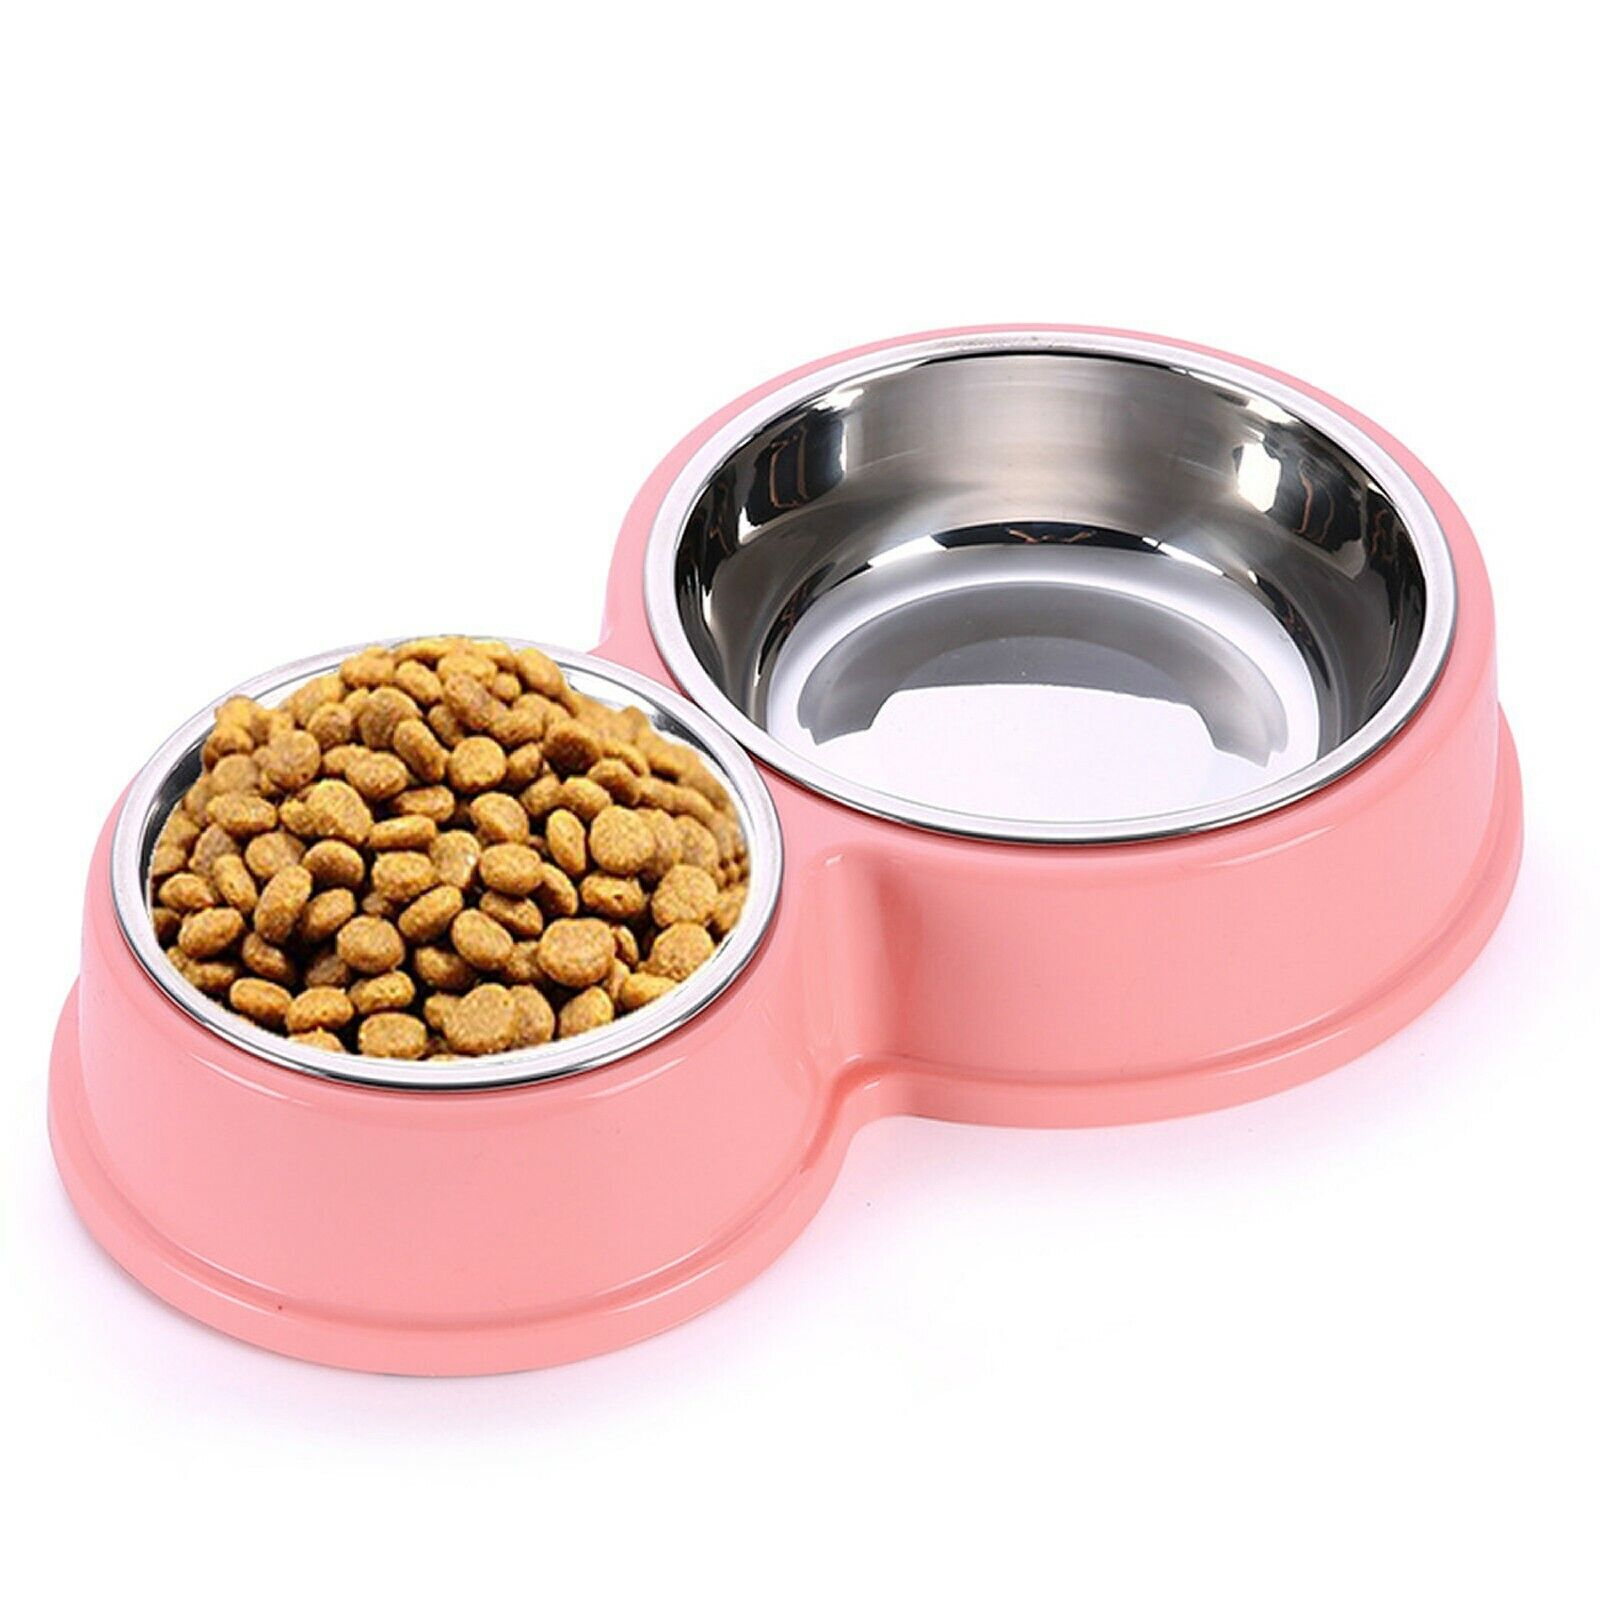 PETnSport Pet Bowl Dog Bowl for Small Dogs and Cats Double Bowl Pet Feeder